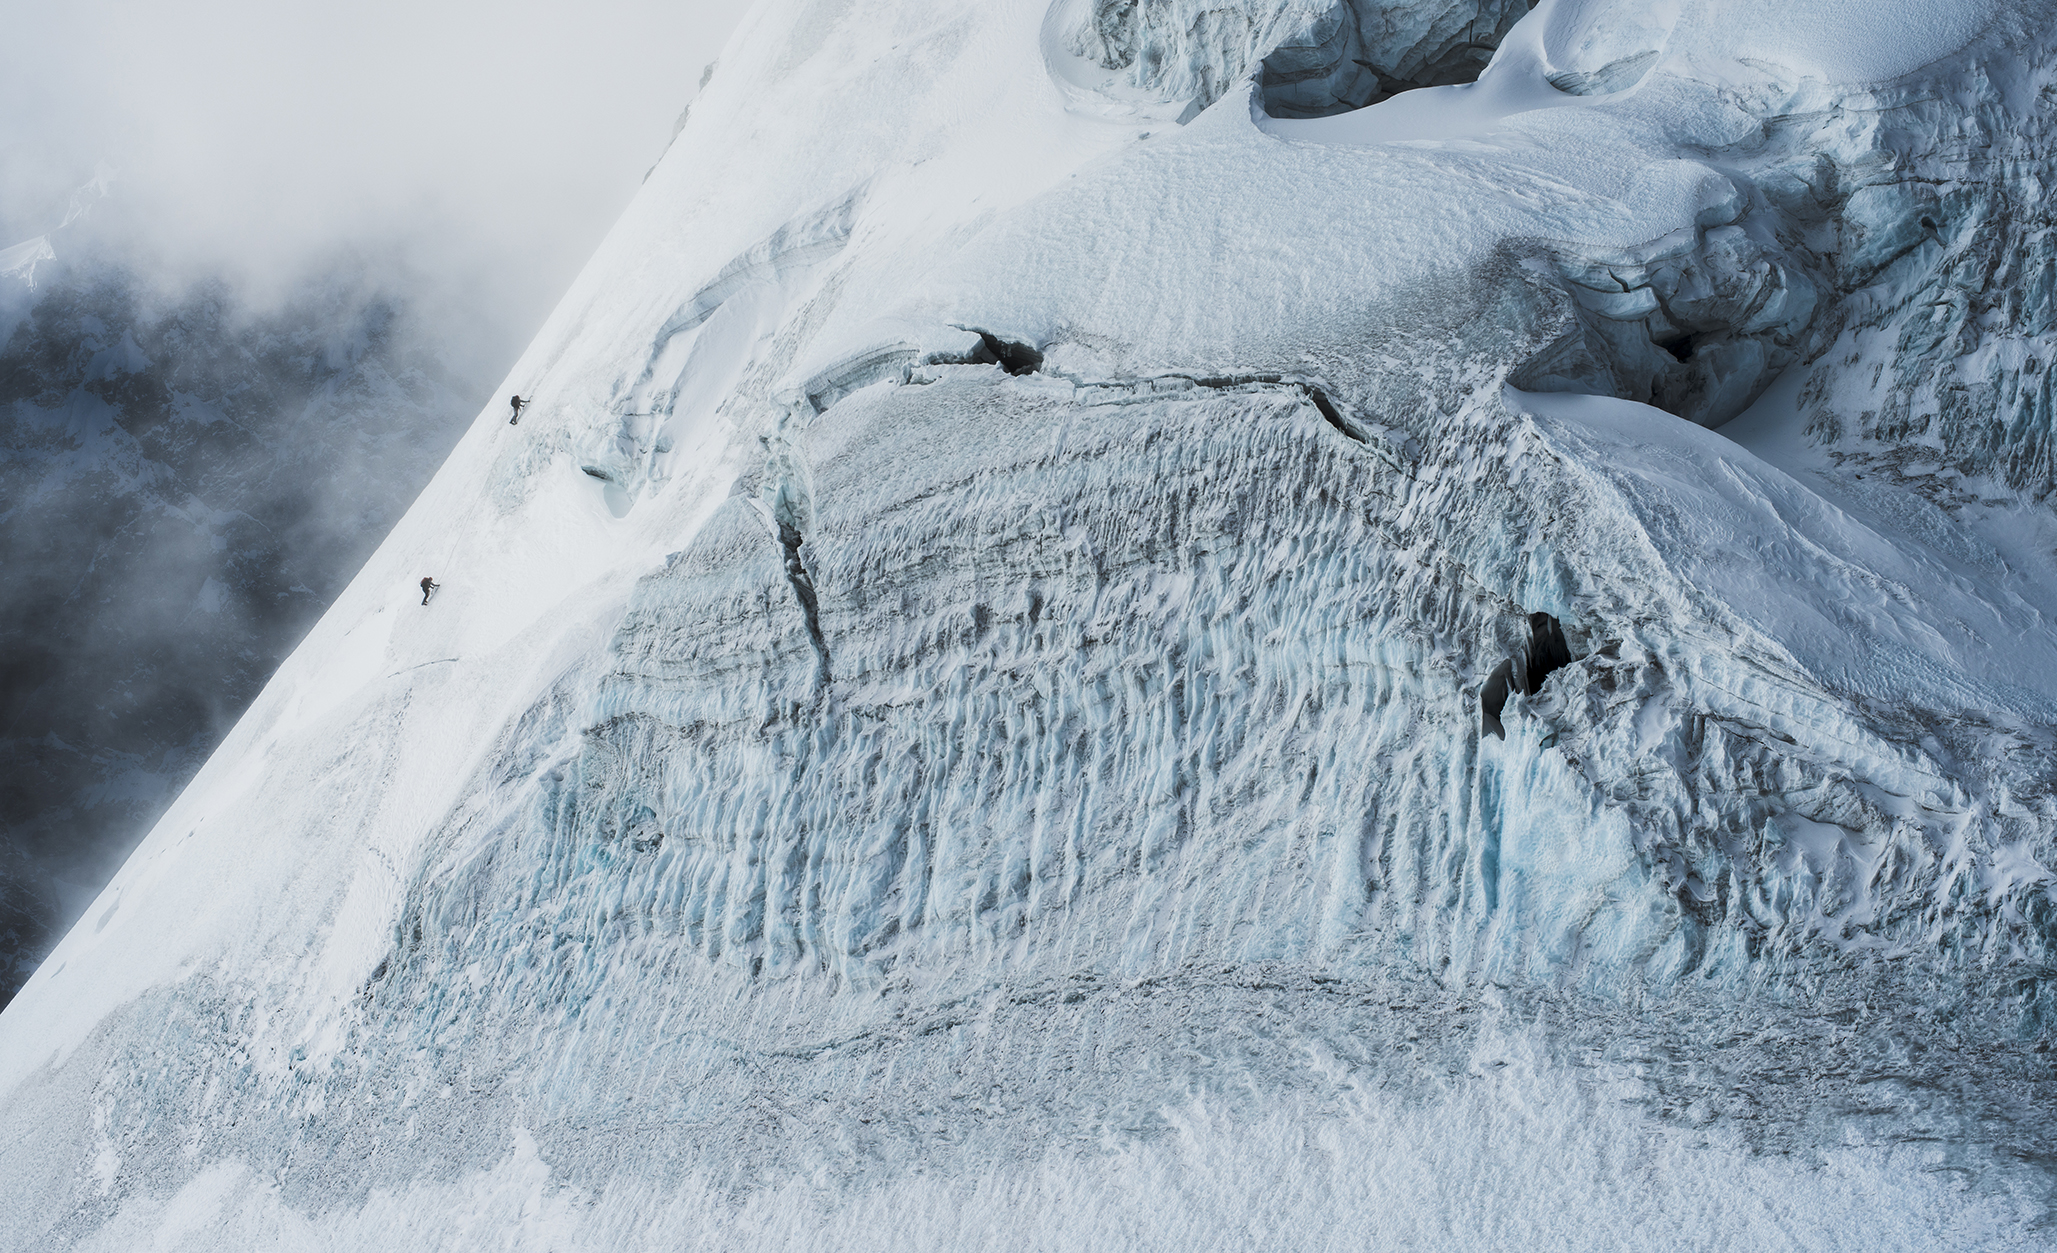 Conrad Anker and Renan Ozturk. Langtang, Nepal. Photography by Tim Kemple.